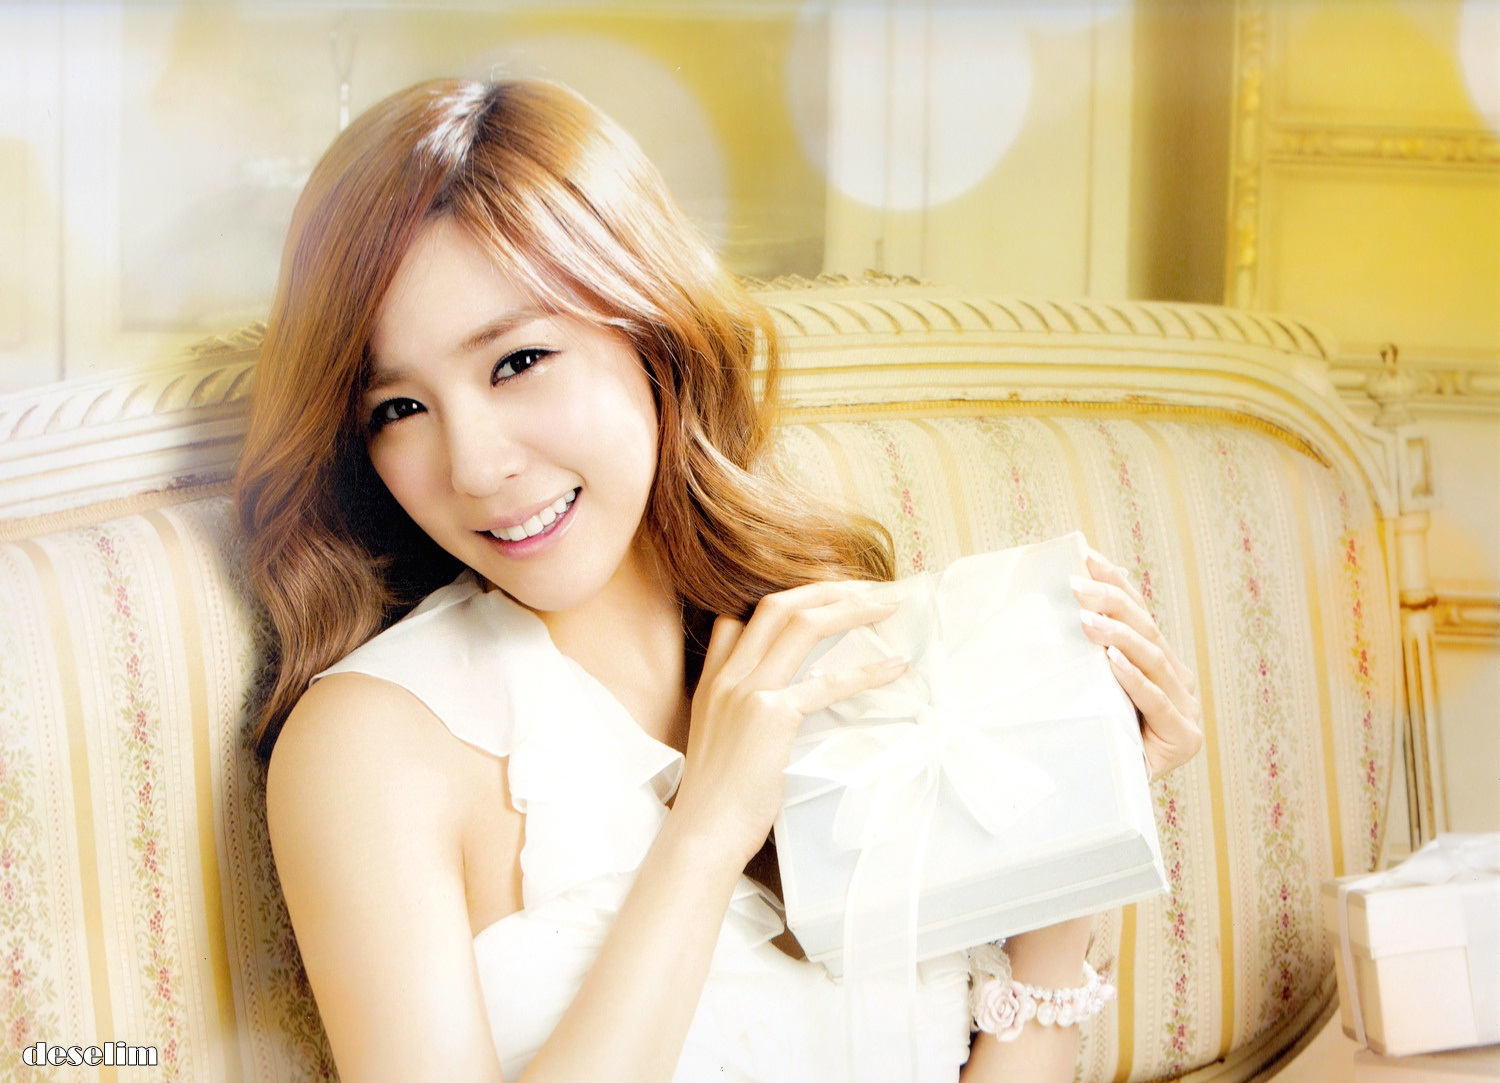 tiffany snsd wallpaper wallpapersafari